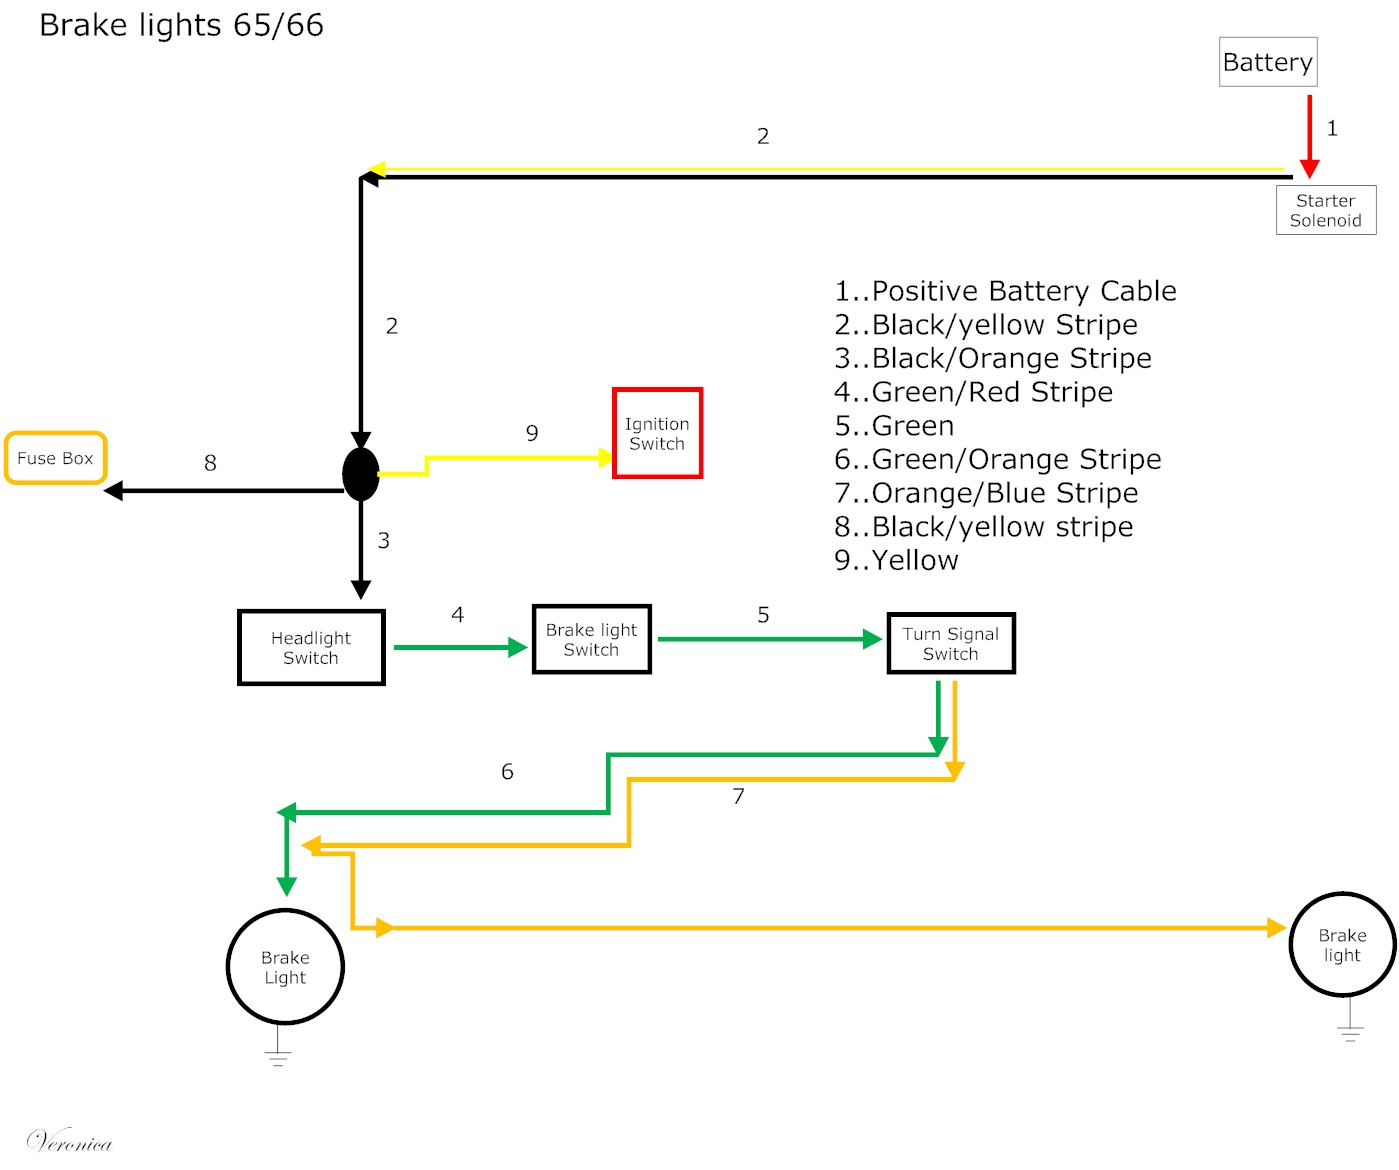 Fog Light Wiring Schematic Auto Electrical Diagram 2008 F150 The Care And Feeding Of Ponies 1966 Mustang Diagrams